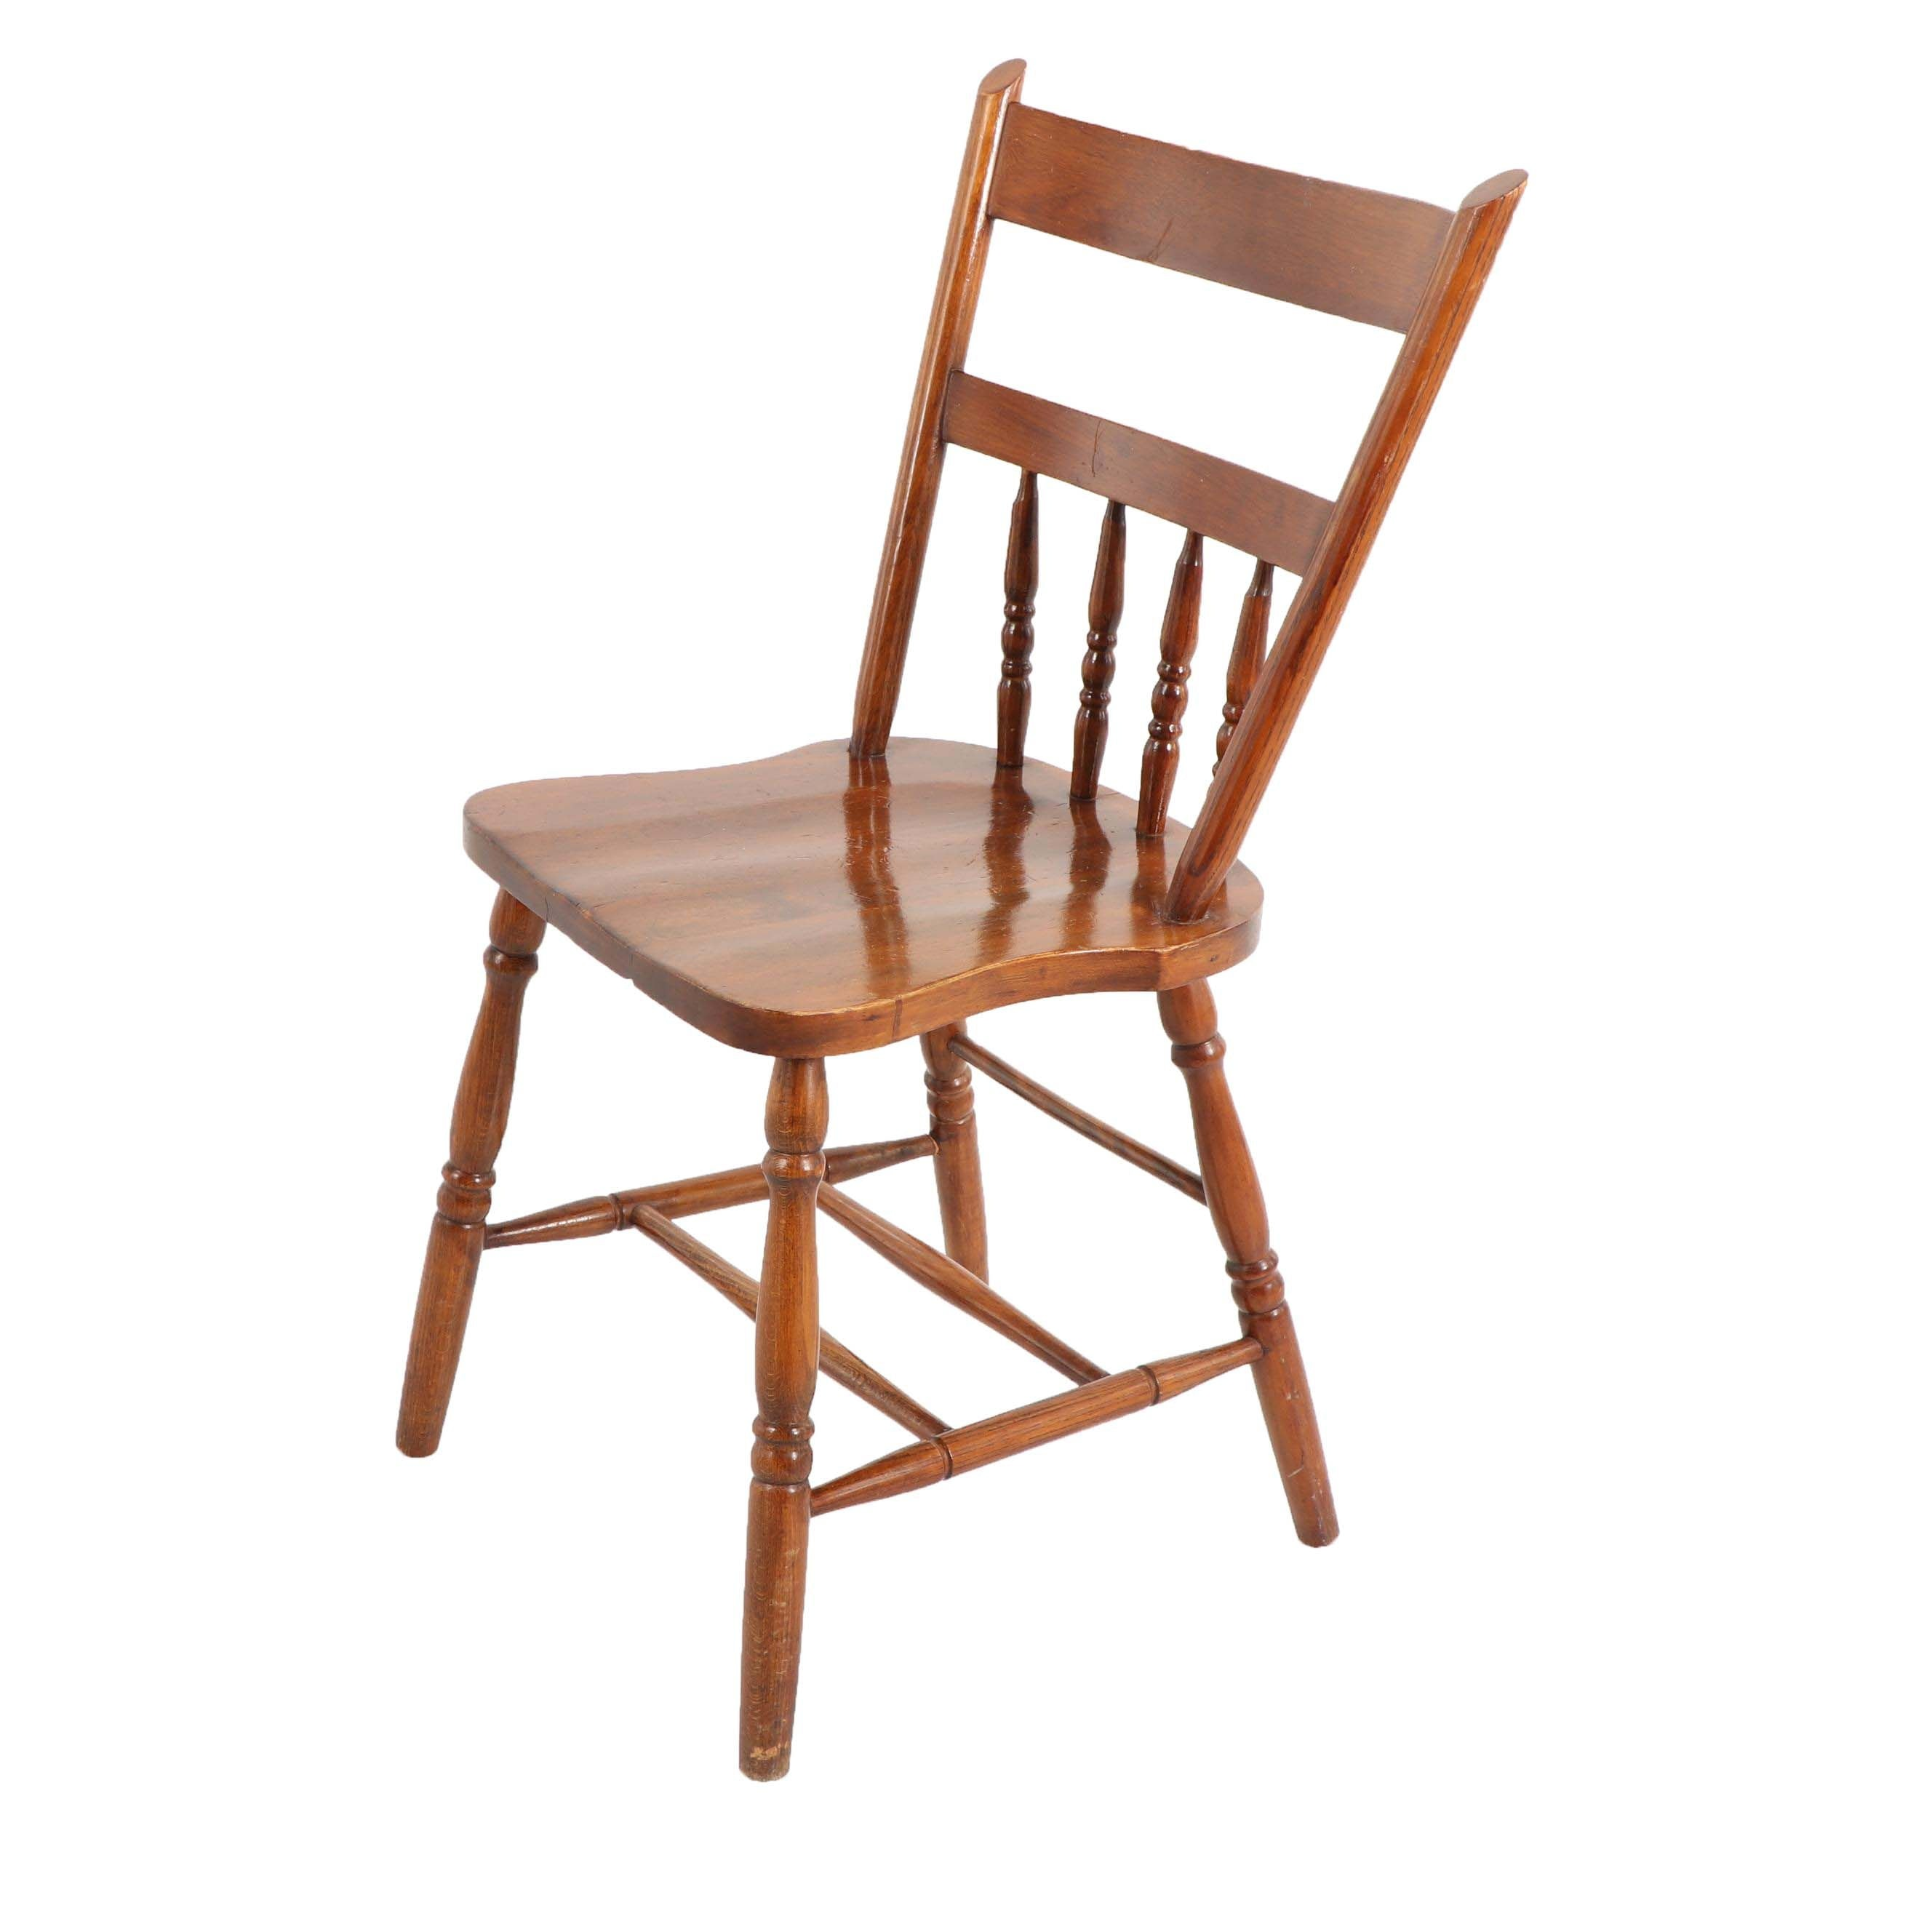 Oak Spindle Back Side Chair by H.B. Lee Furniture Co., Early/Mid 20th Century